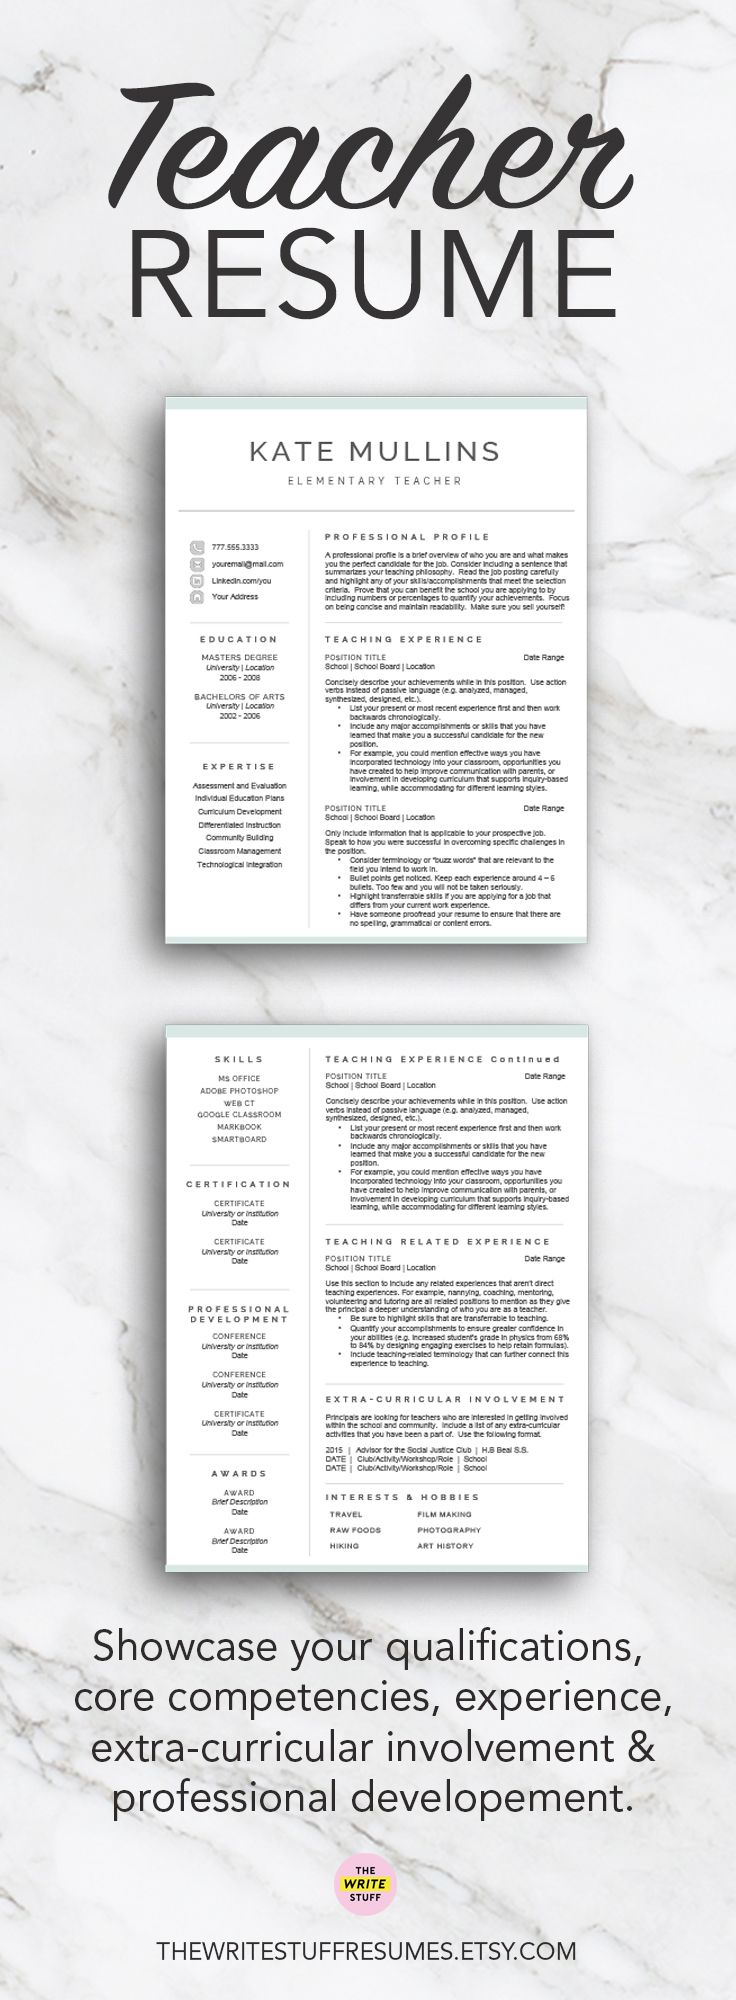 resume Teacher Resume Samples 25 best teacher resumes ideas on pinterest teaching resume template for word pages 1 2 and 3 page cv teachers educator cover letter instant downlo